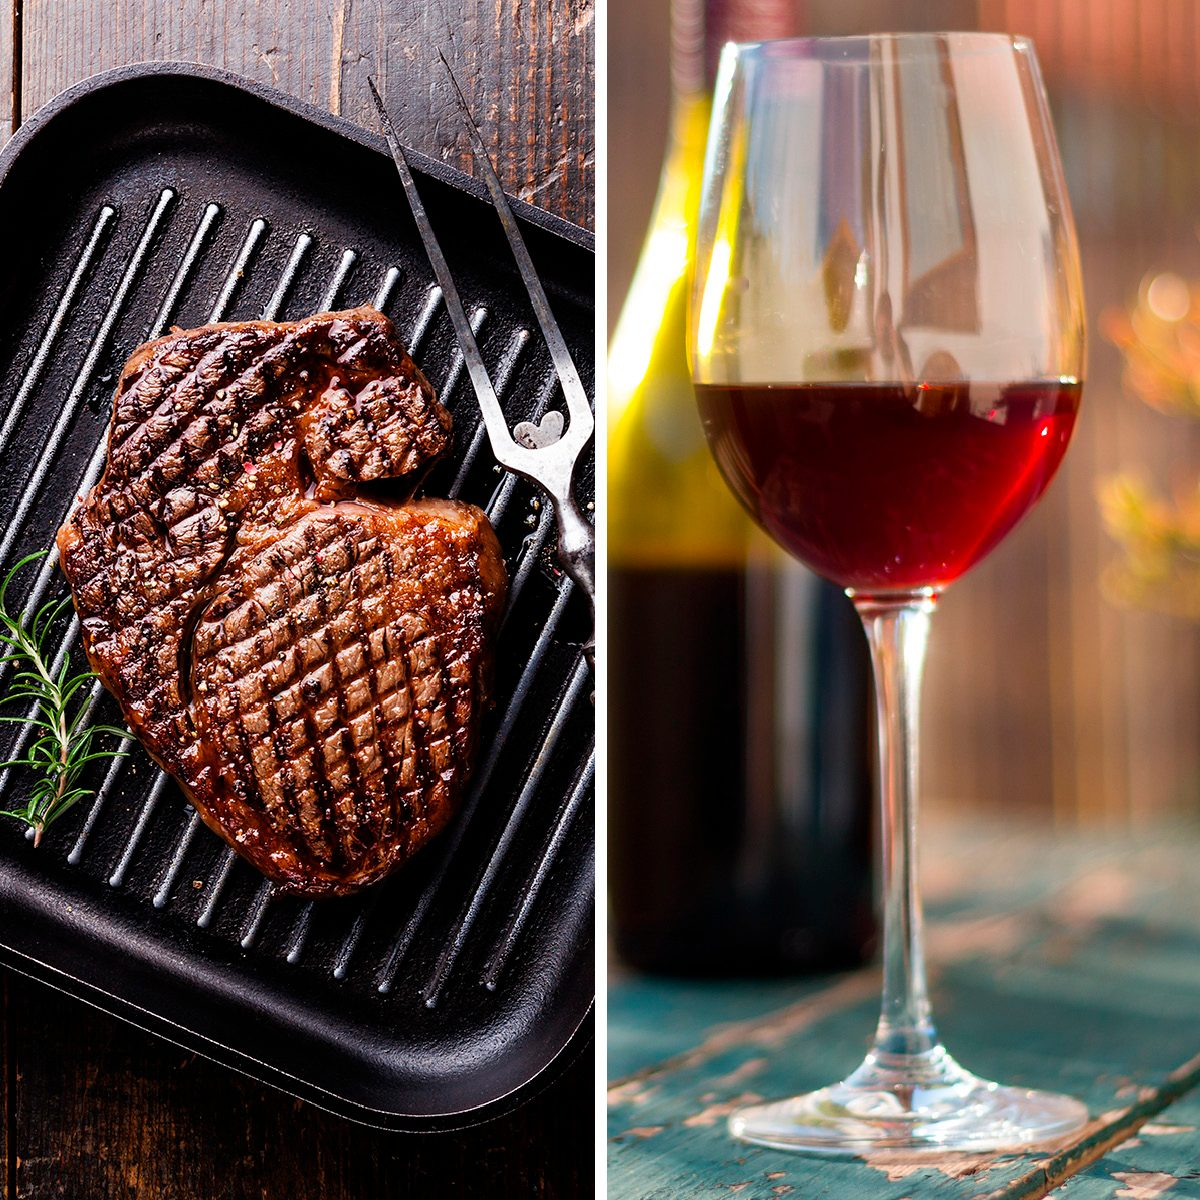 Glass of red wine on an old, rustic wood table. Enjoying it in the own garden in the evening sun.; Shutterstock ID 1361979782; Job (TFH, TOH, RD, BNB, CWM, CM): TOH Grilled Black Angus Steak Ribeye on grill iron pan on wooden background with wine; Shutterstock ID 306596336; Job (TFH, TOH, RD, BNB, CWM, CM): TOH